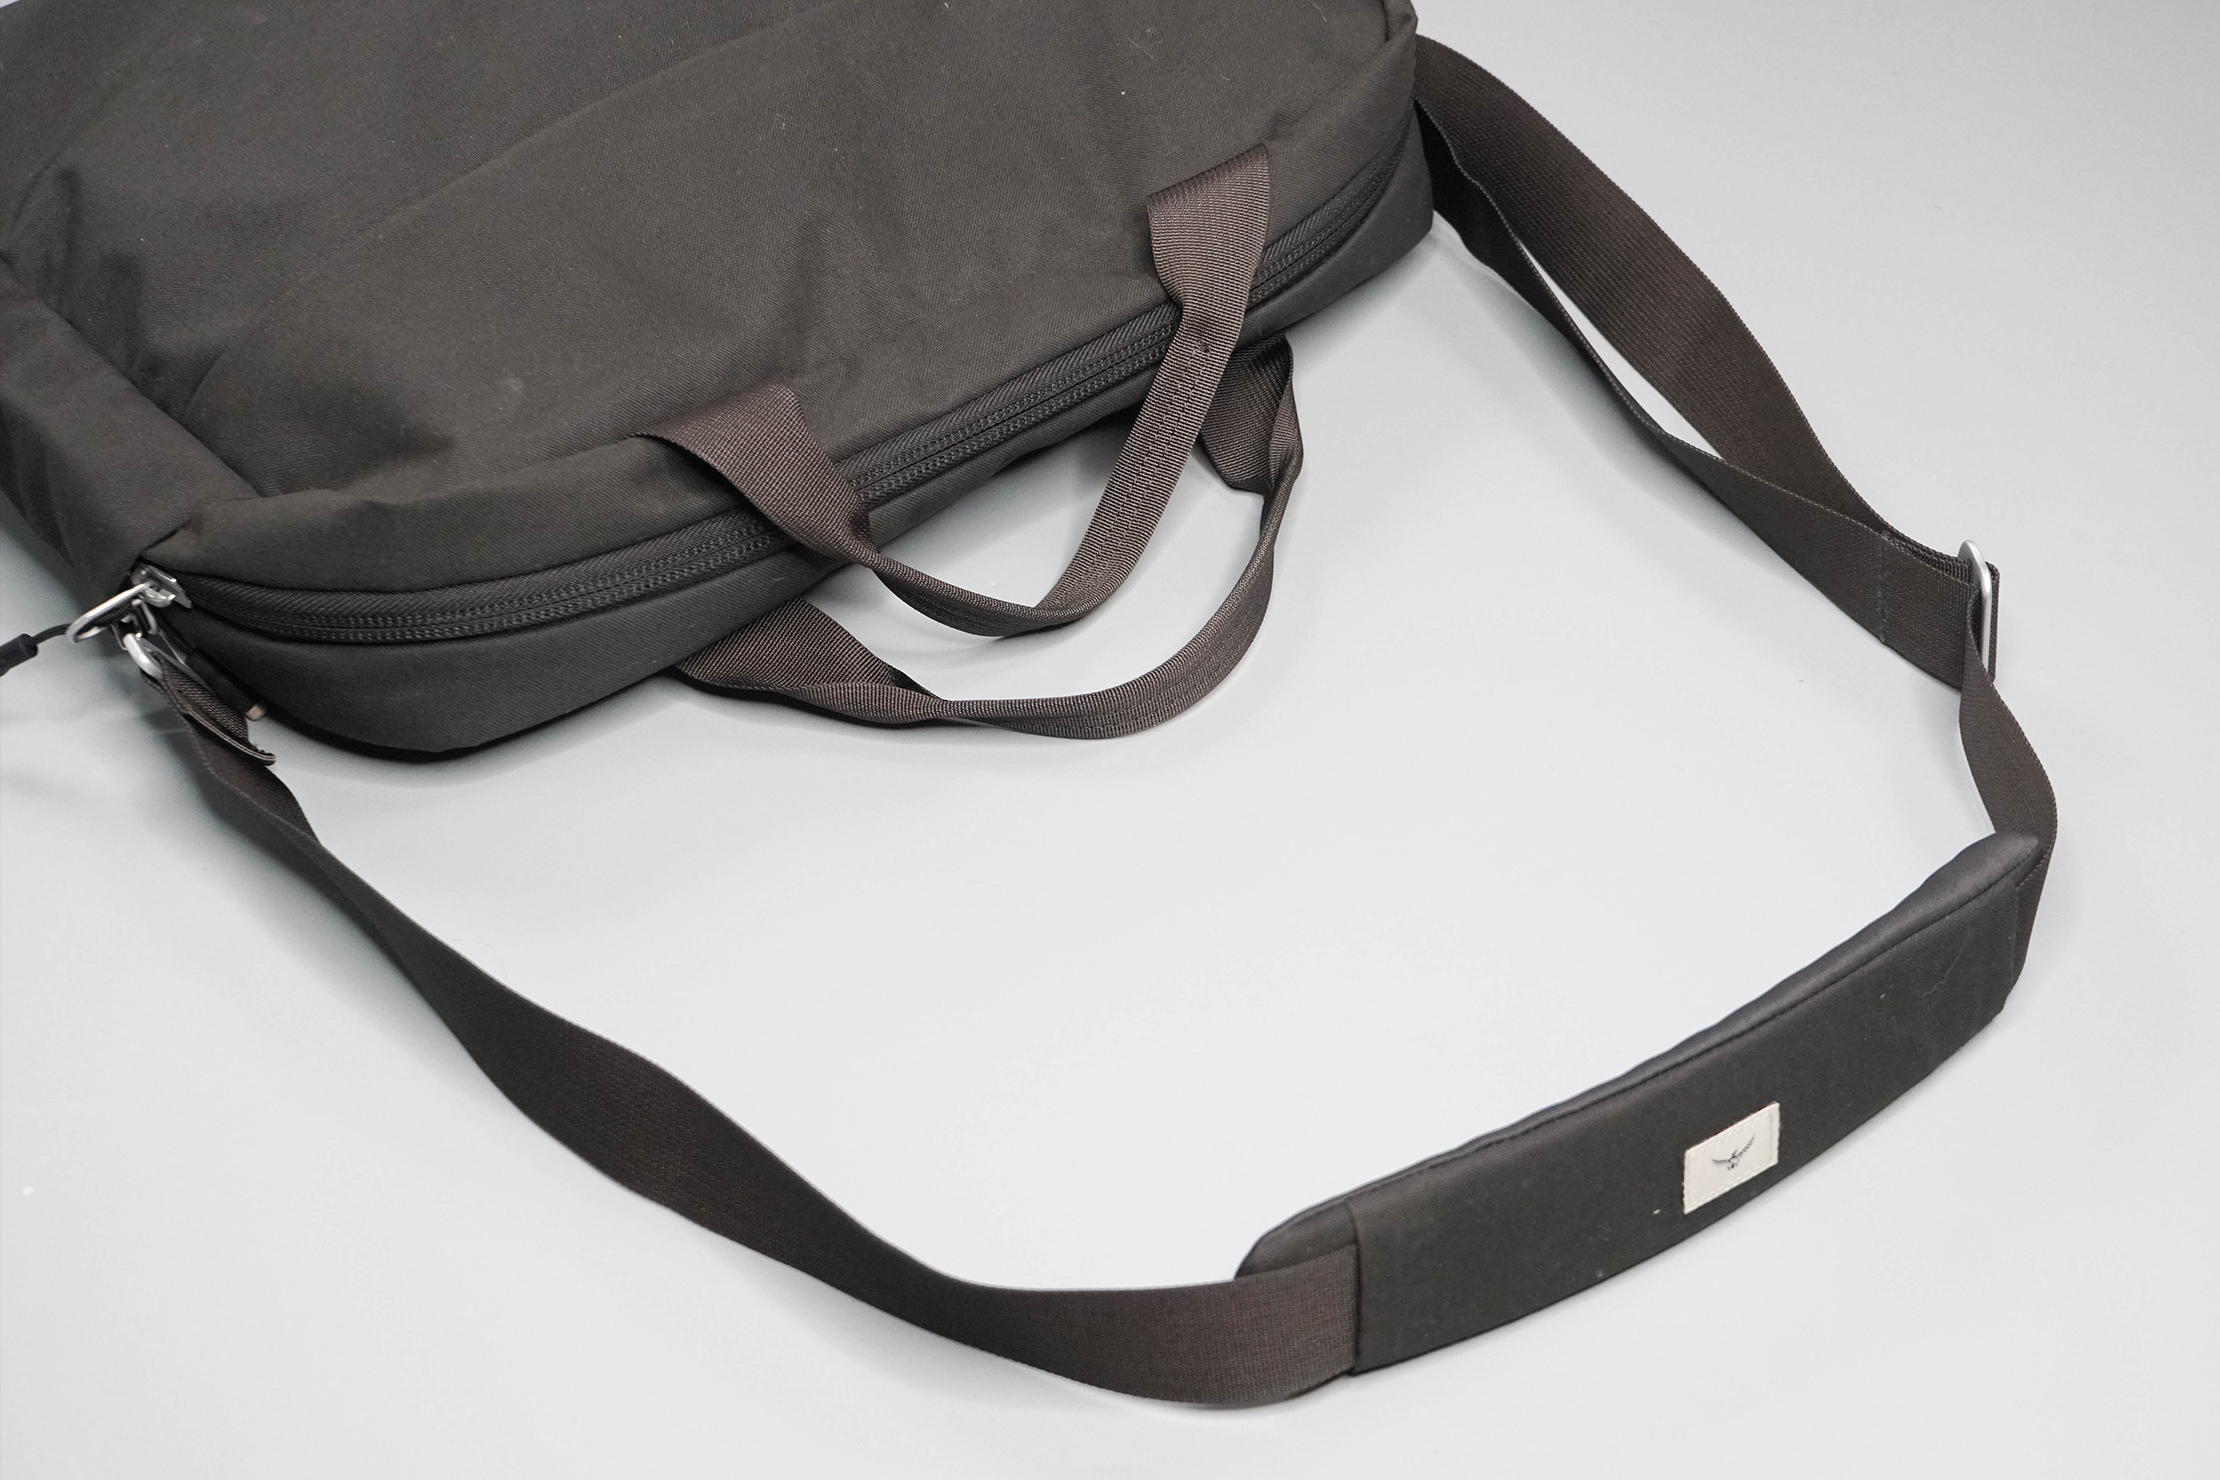 Osprey Arcane Brief Shoulder Strap